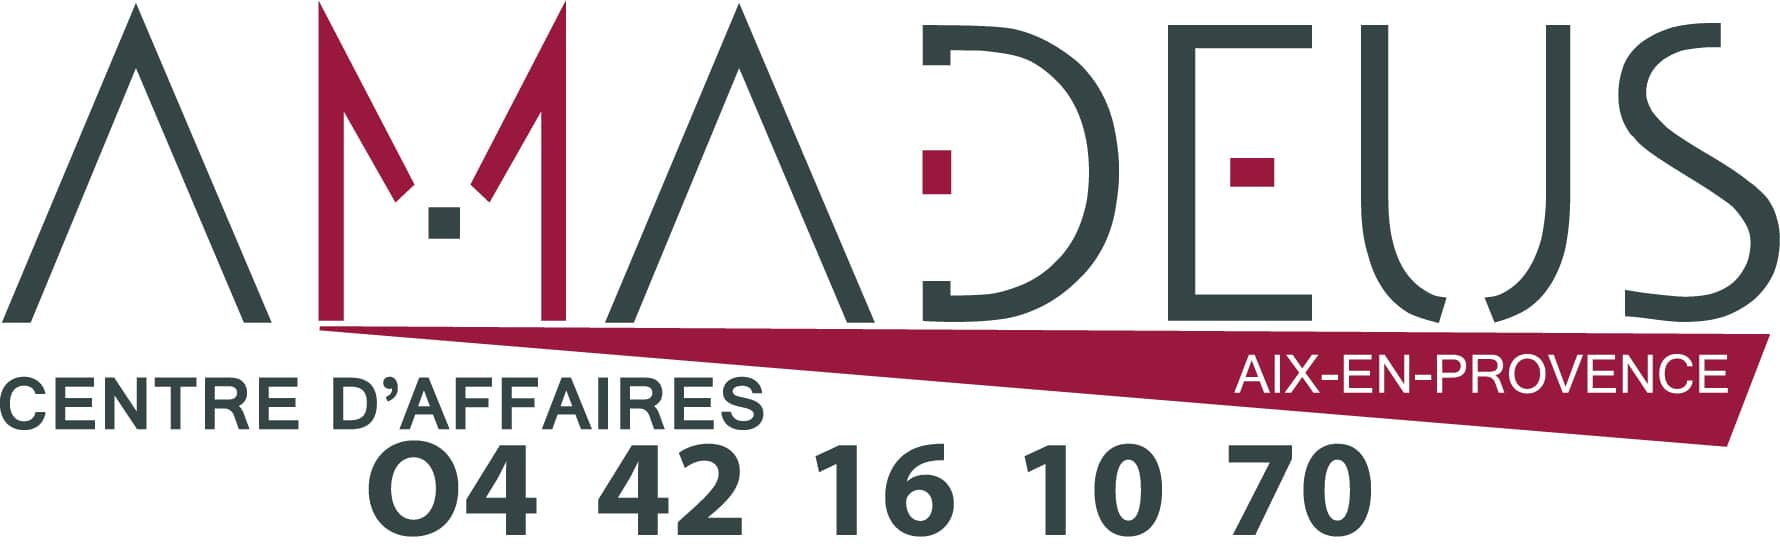 Centre d'Affaires Amadeus